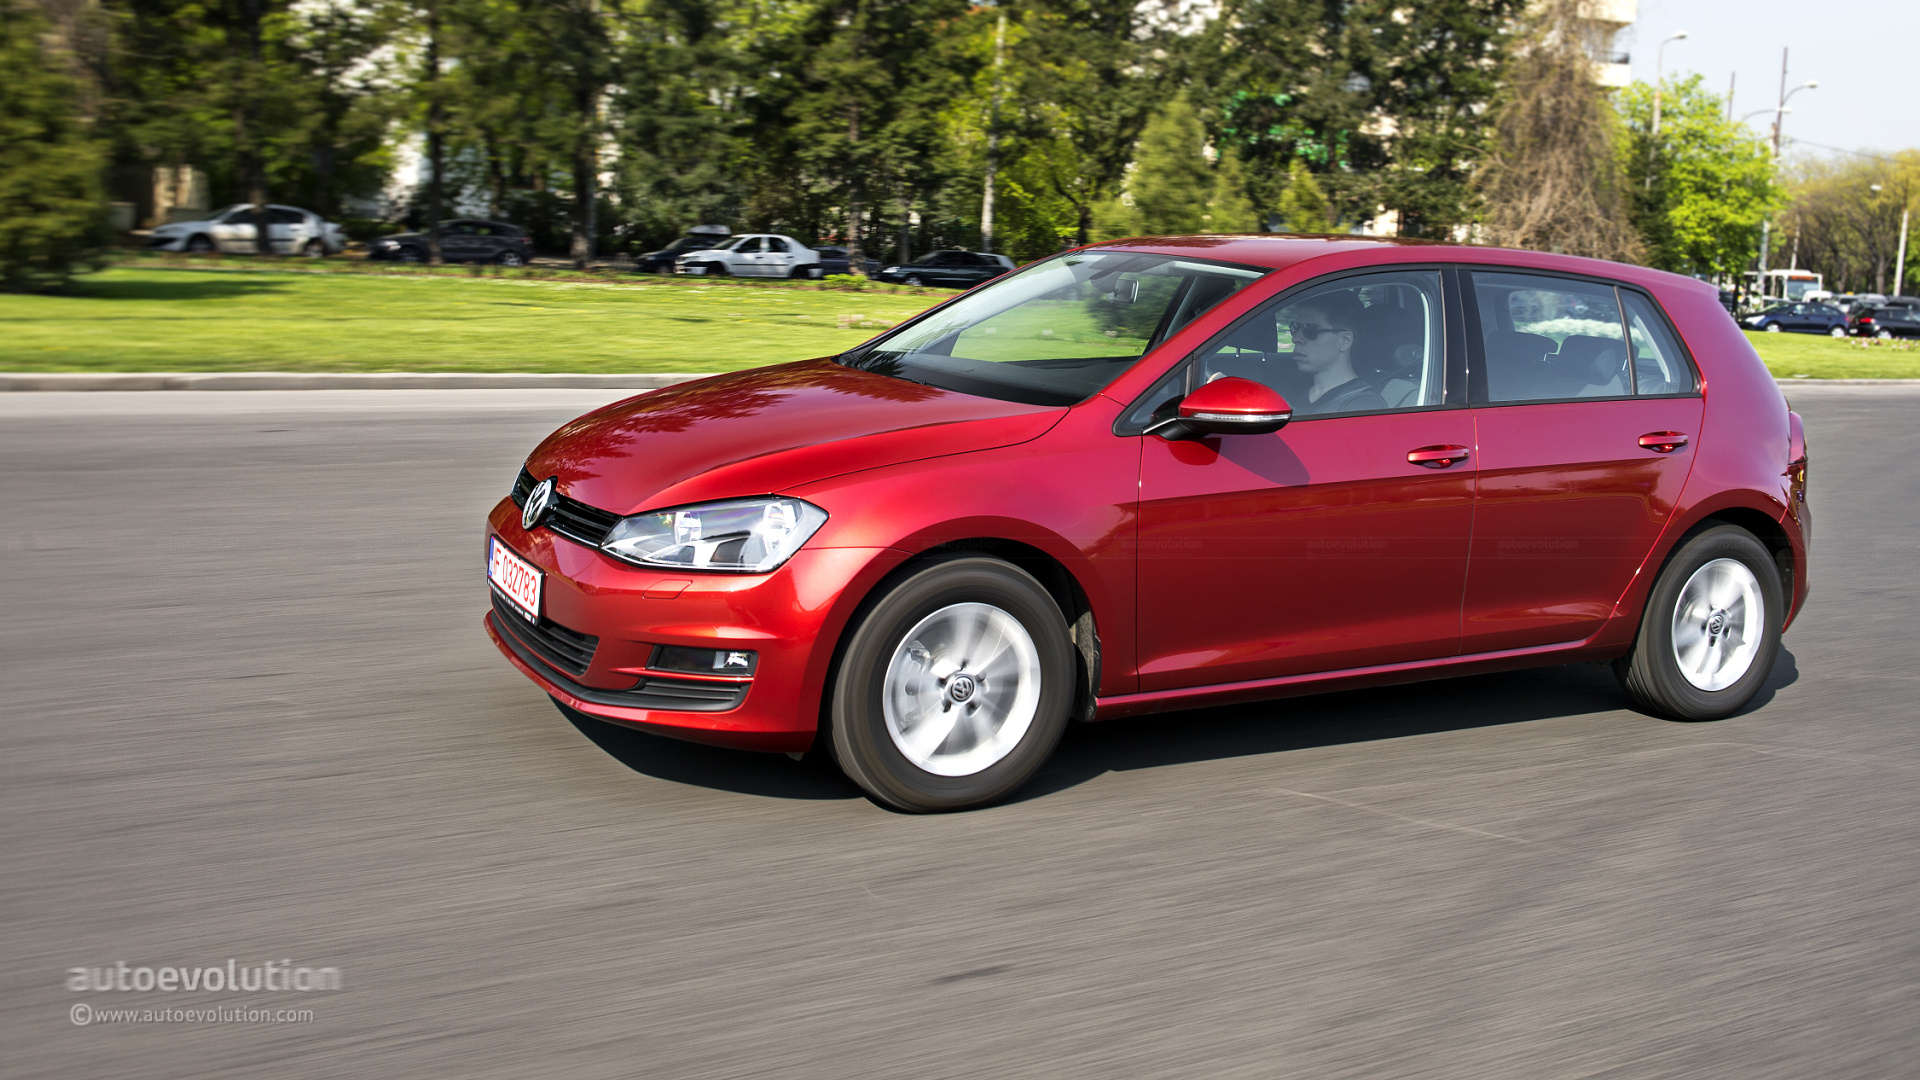 VOLKSWAGEN Golf 7 Review - autoevolution